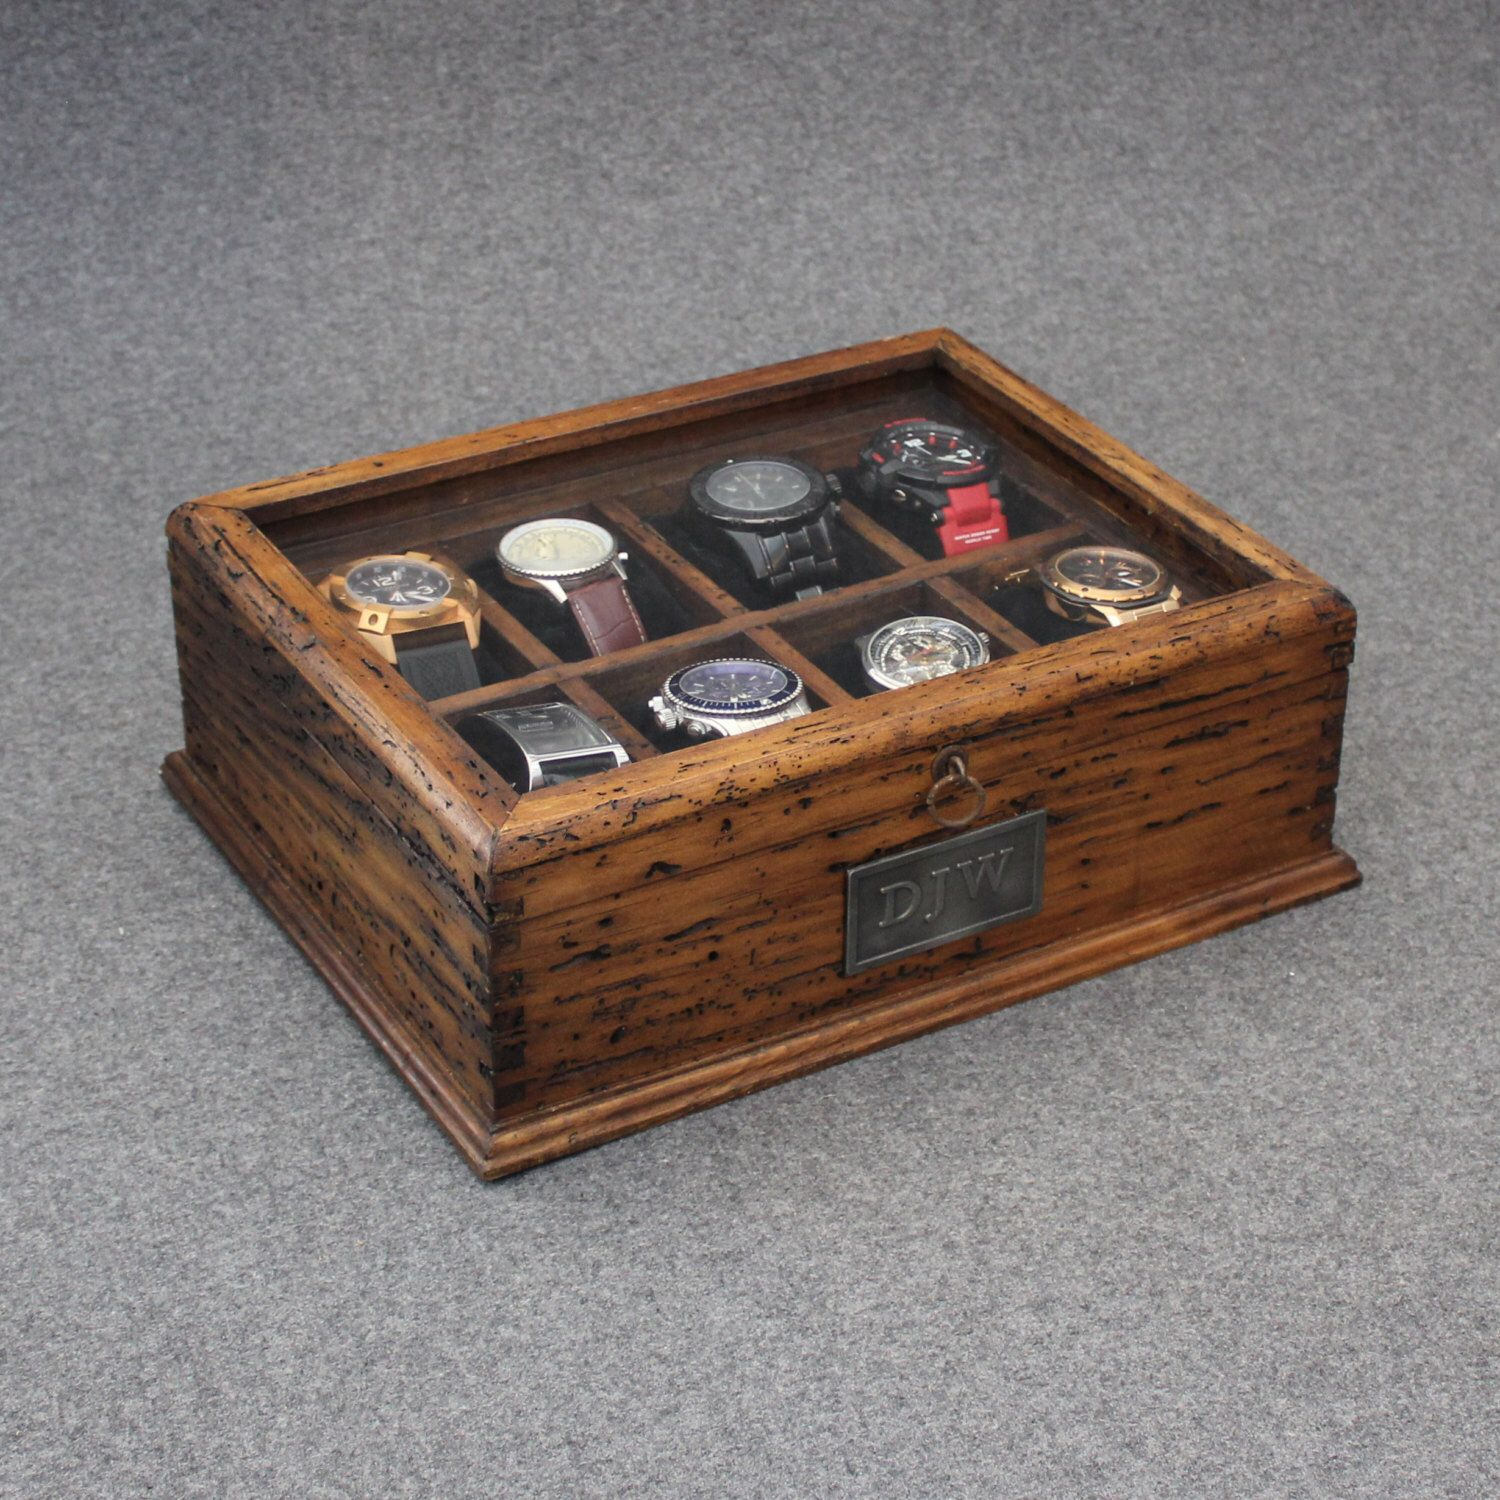 New Personalized Rustic Men's Watch Box for 8 watches with